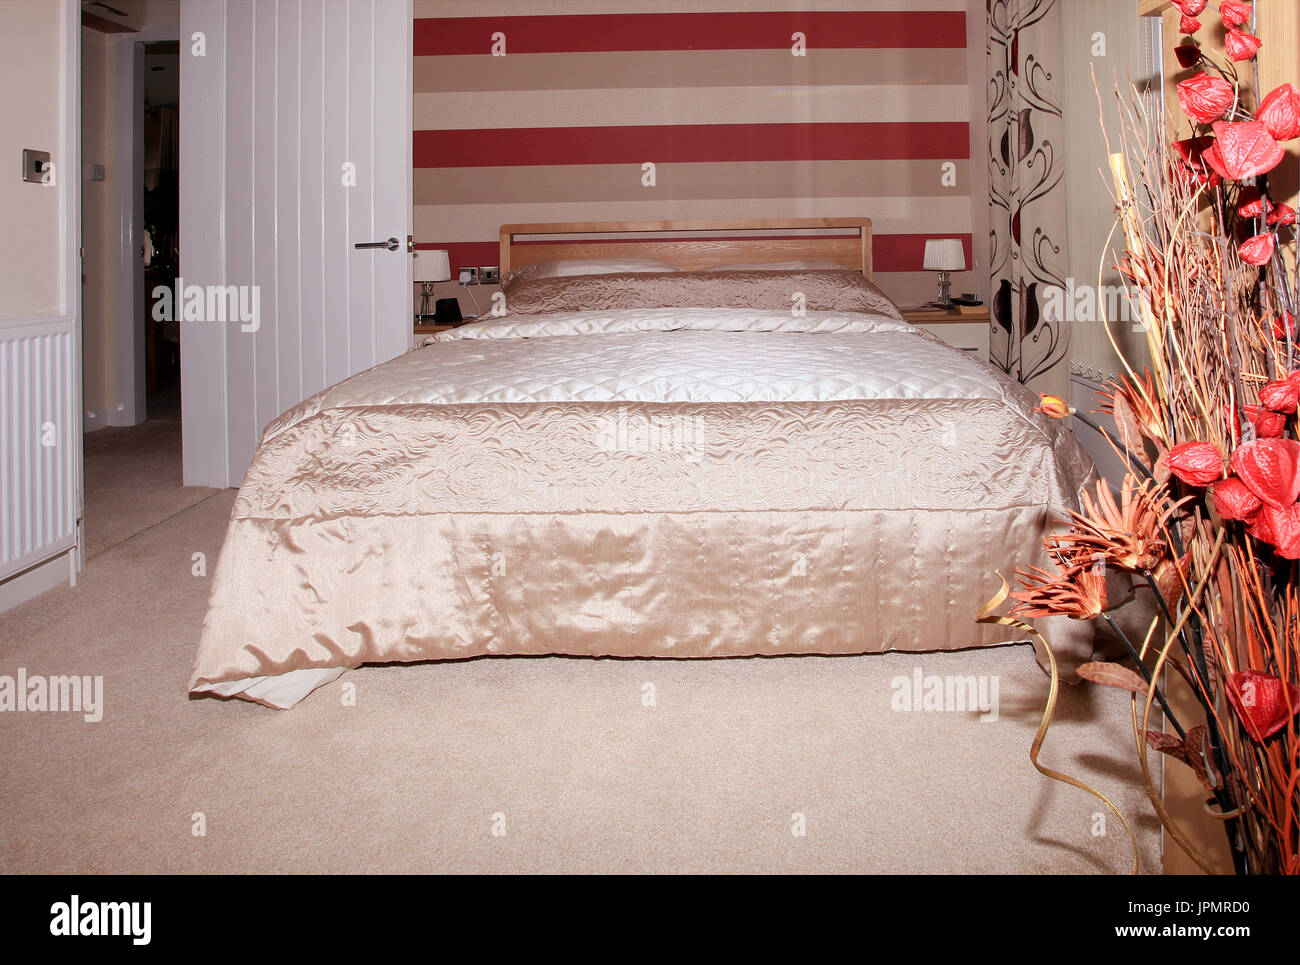 fitted bedroom, modern interior design, home furnishing - Stock Image